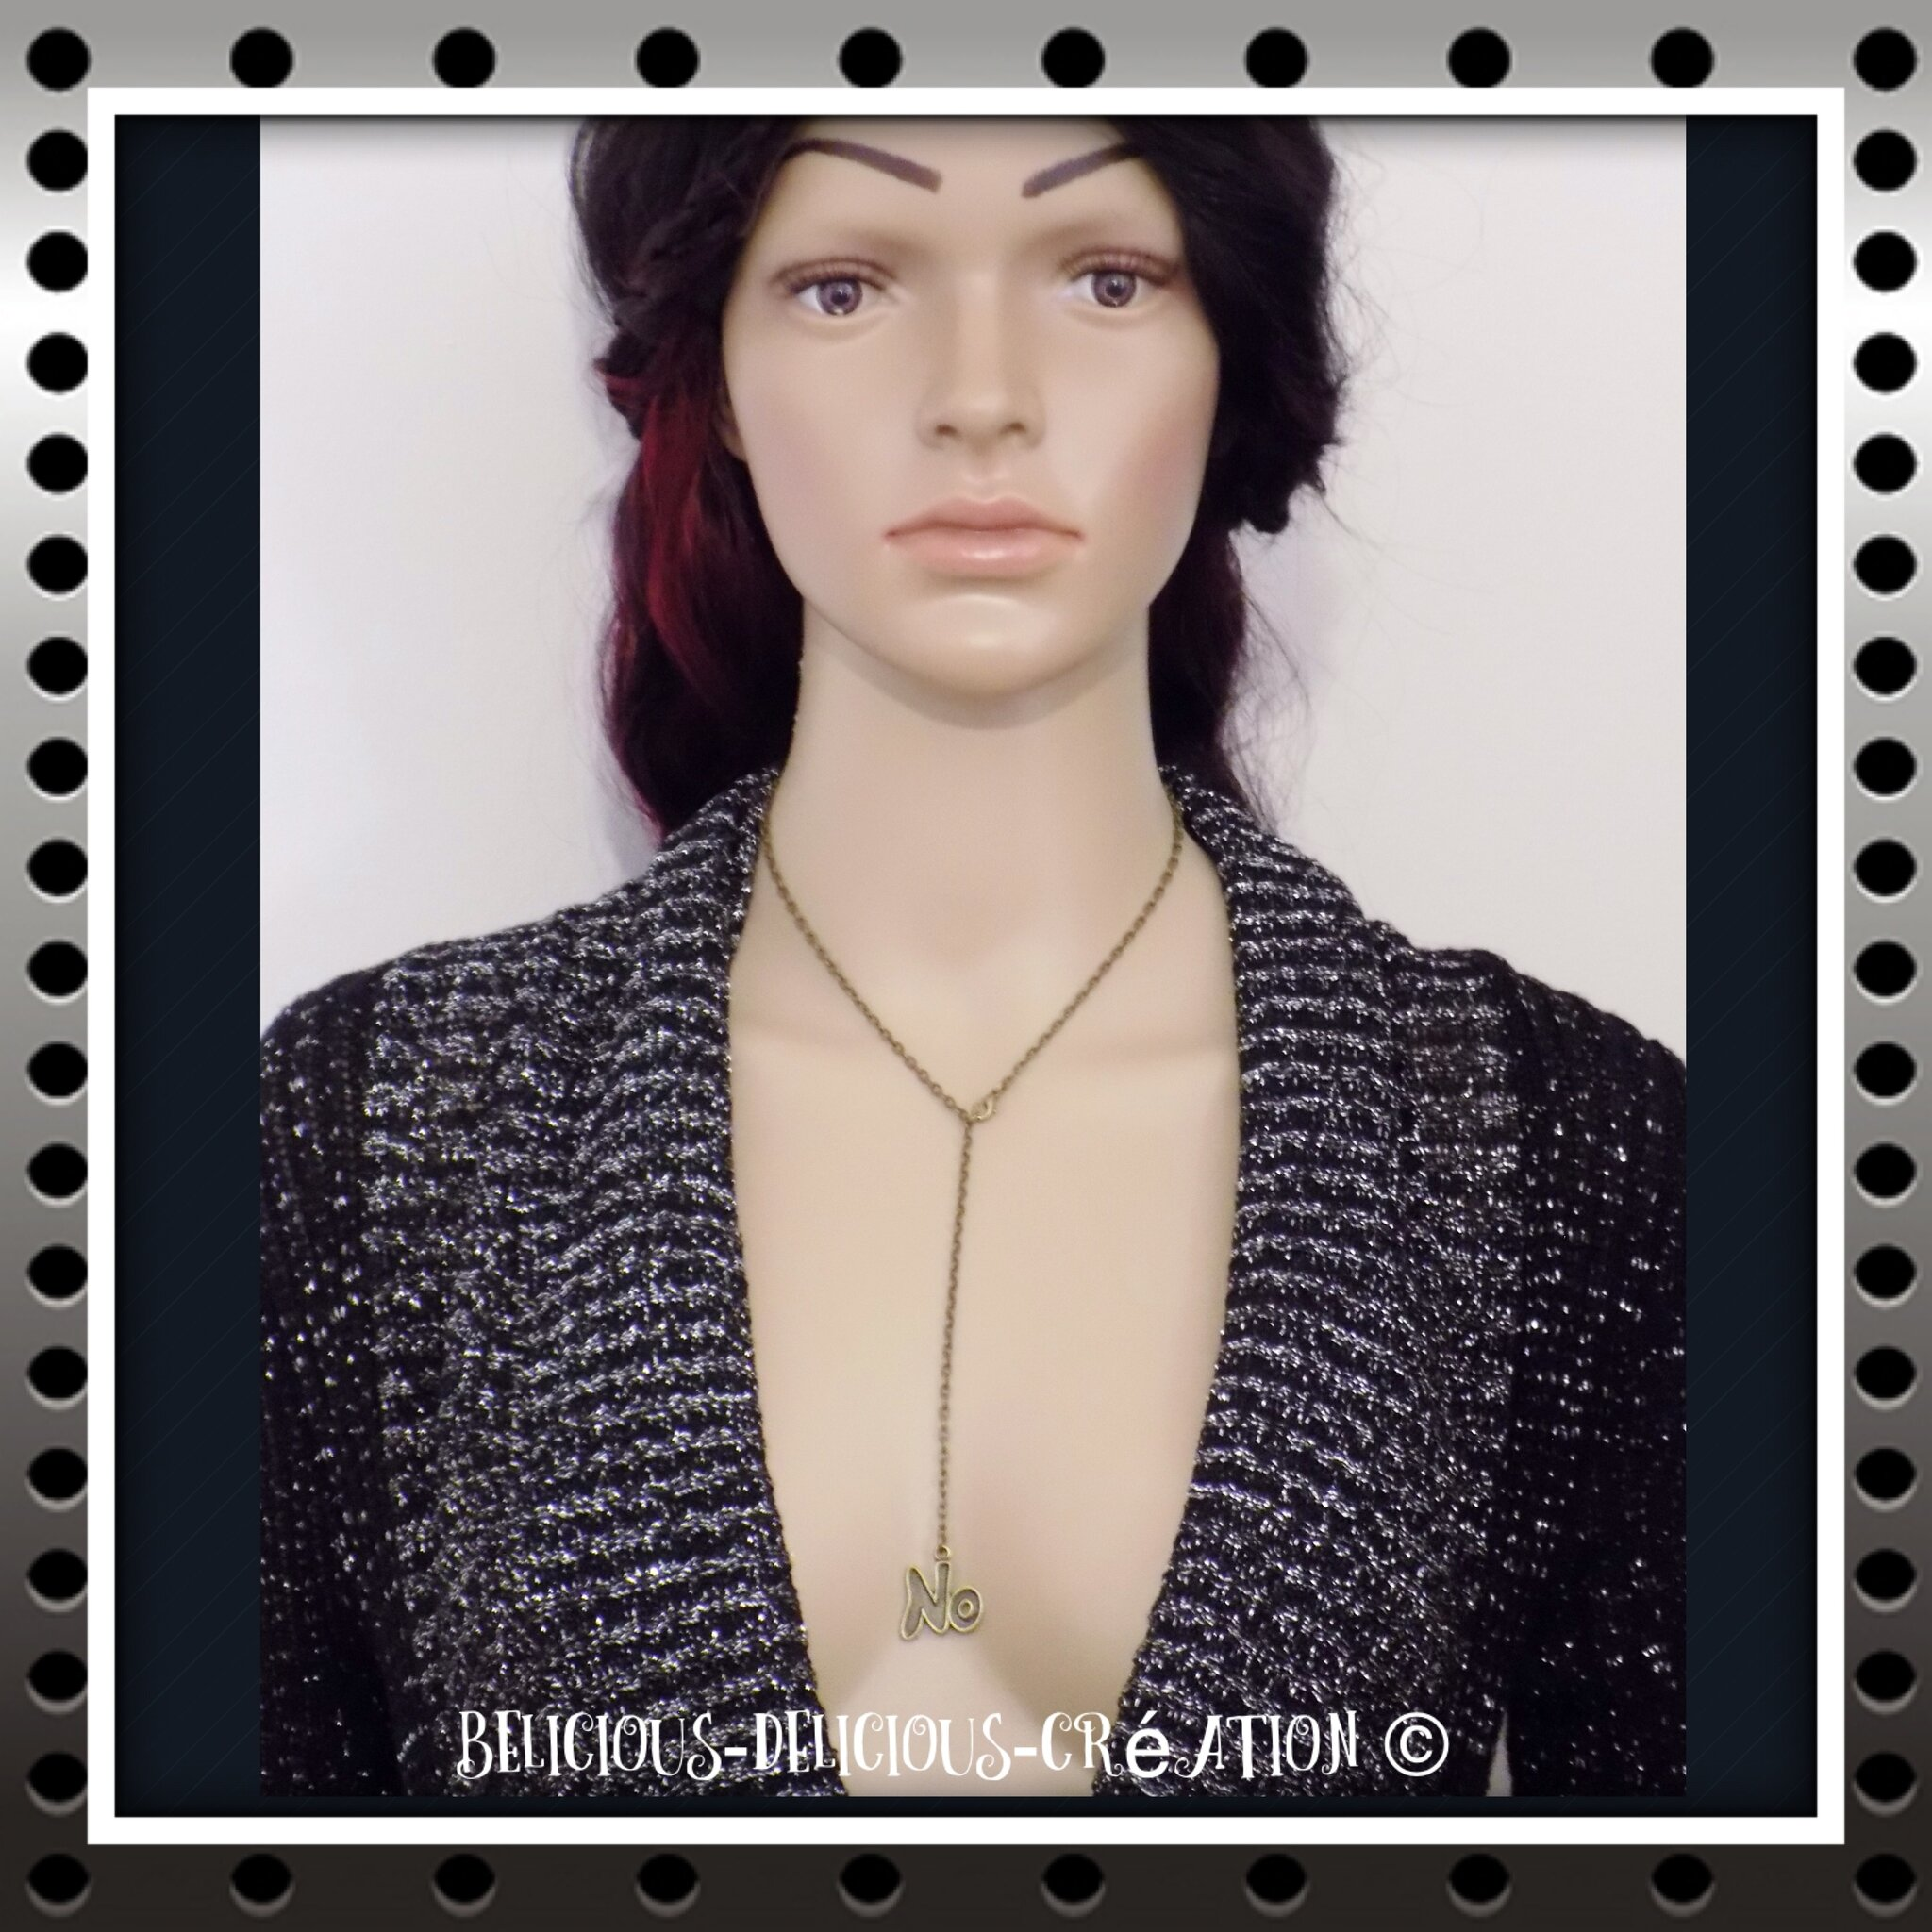 Original Collier !! NO !! Anitique bronze T: 38cm metal bronze BELICIOUS-DELICIOUS-CREATION